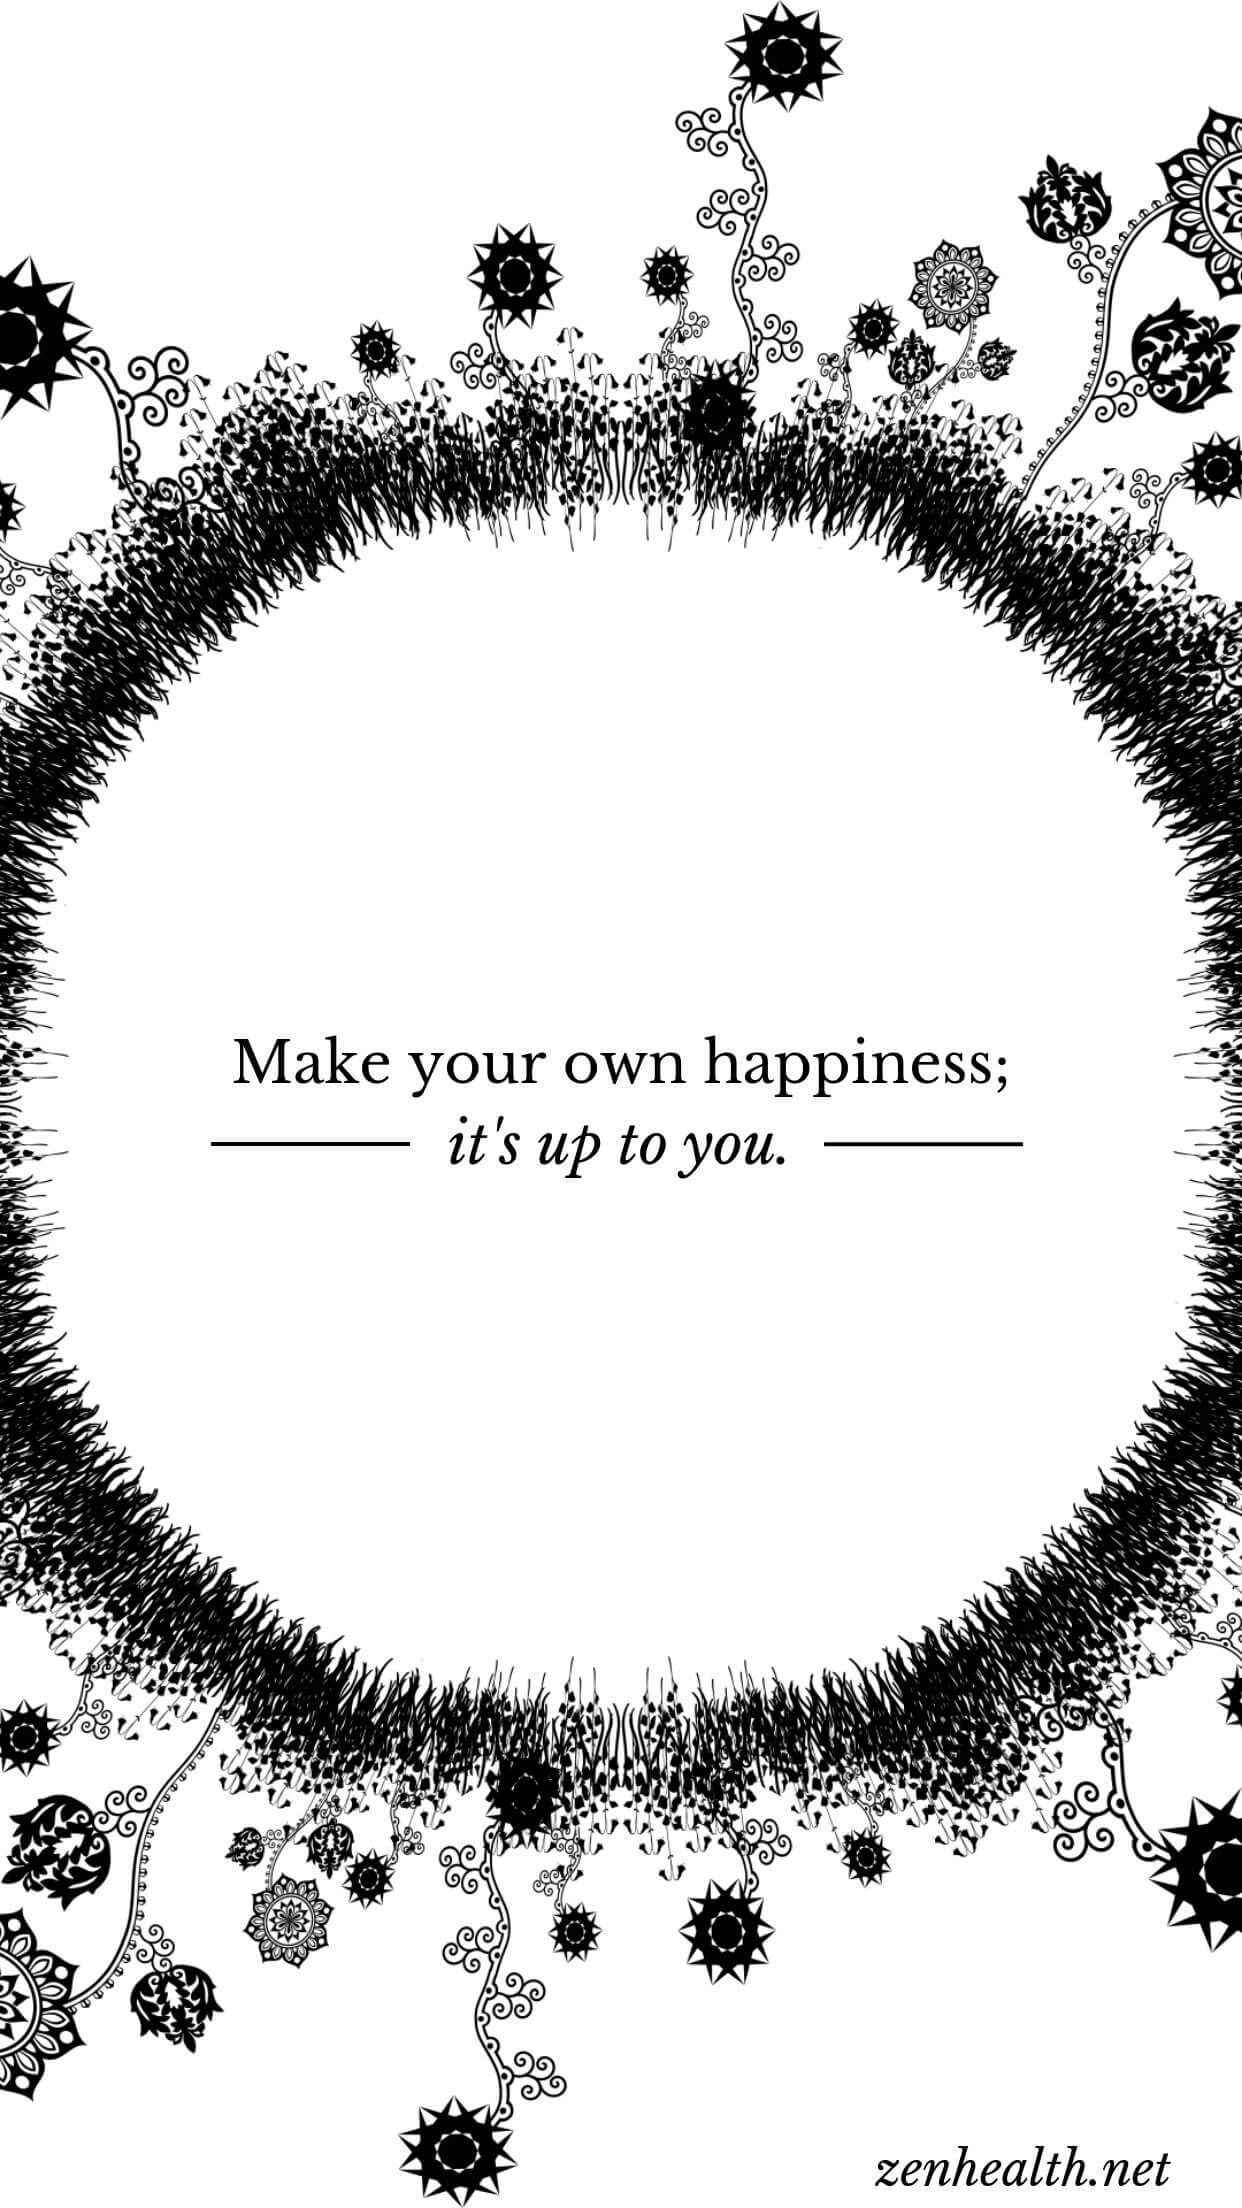 Happiness Quotes: Smile, Laugh and Enjoy These 34 Quotes - Zenhealth